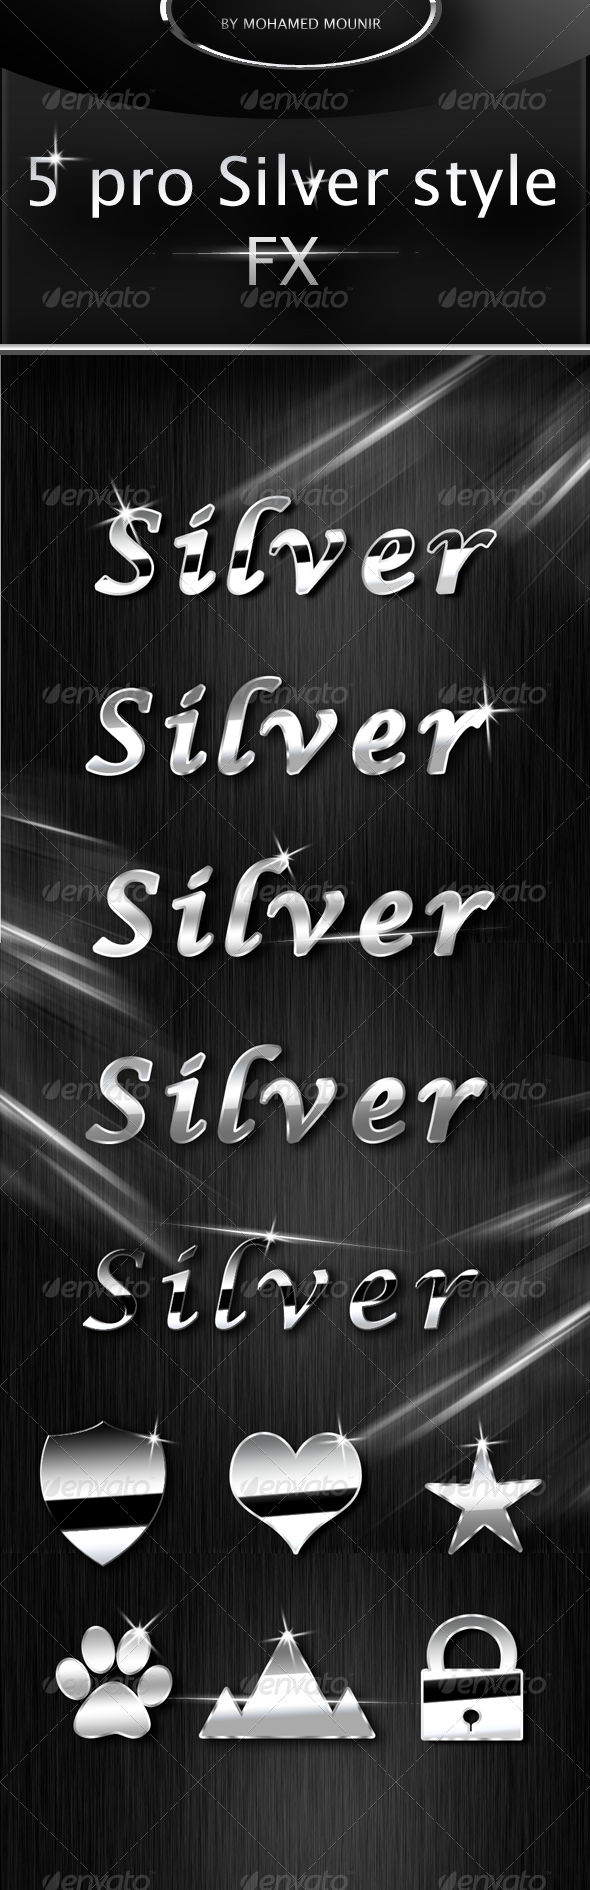 Silver Text Styles - Text Effects Actions